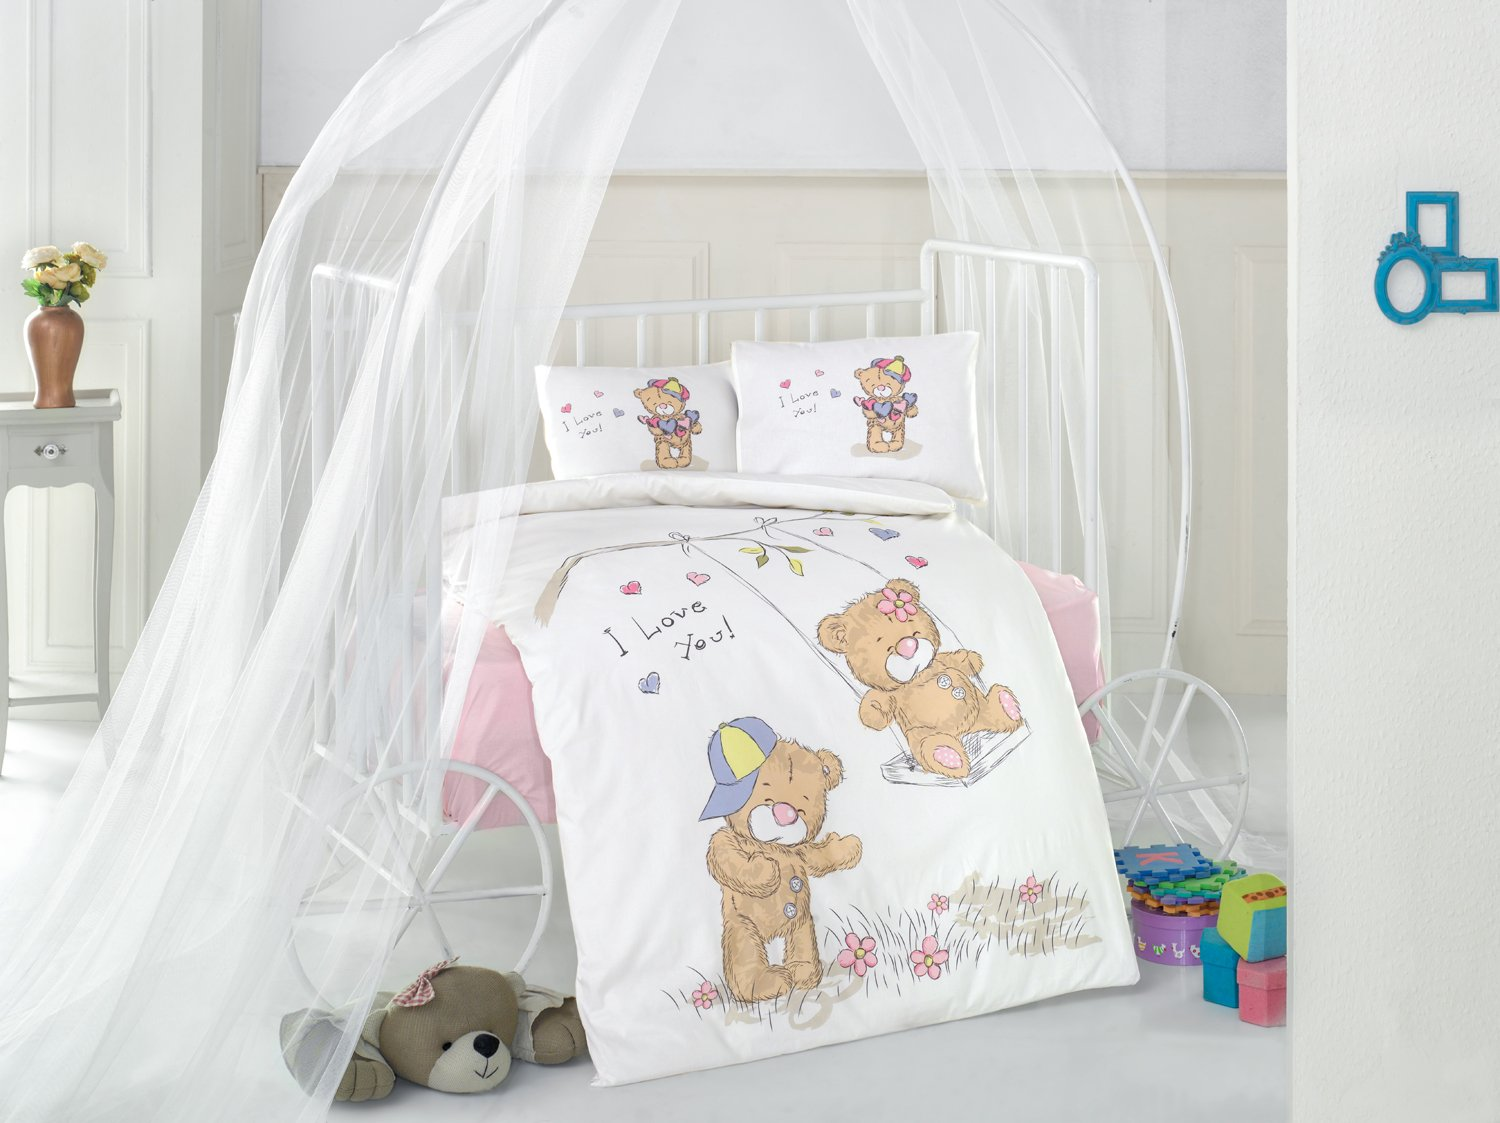 Masal V1 Pink Bears Baby Cot Bed Duvet Cover Set, 100% Cotton Soft and Healthy 4-Pieces Bedding Set